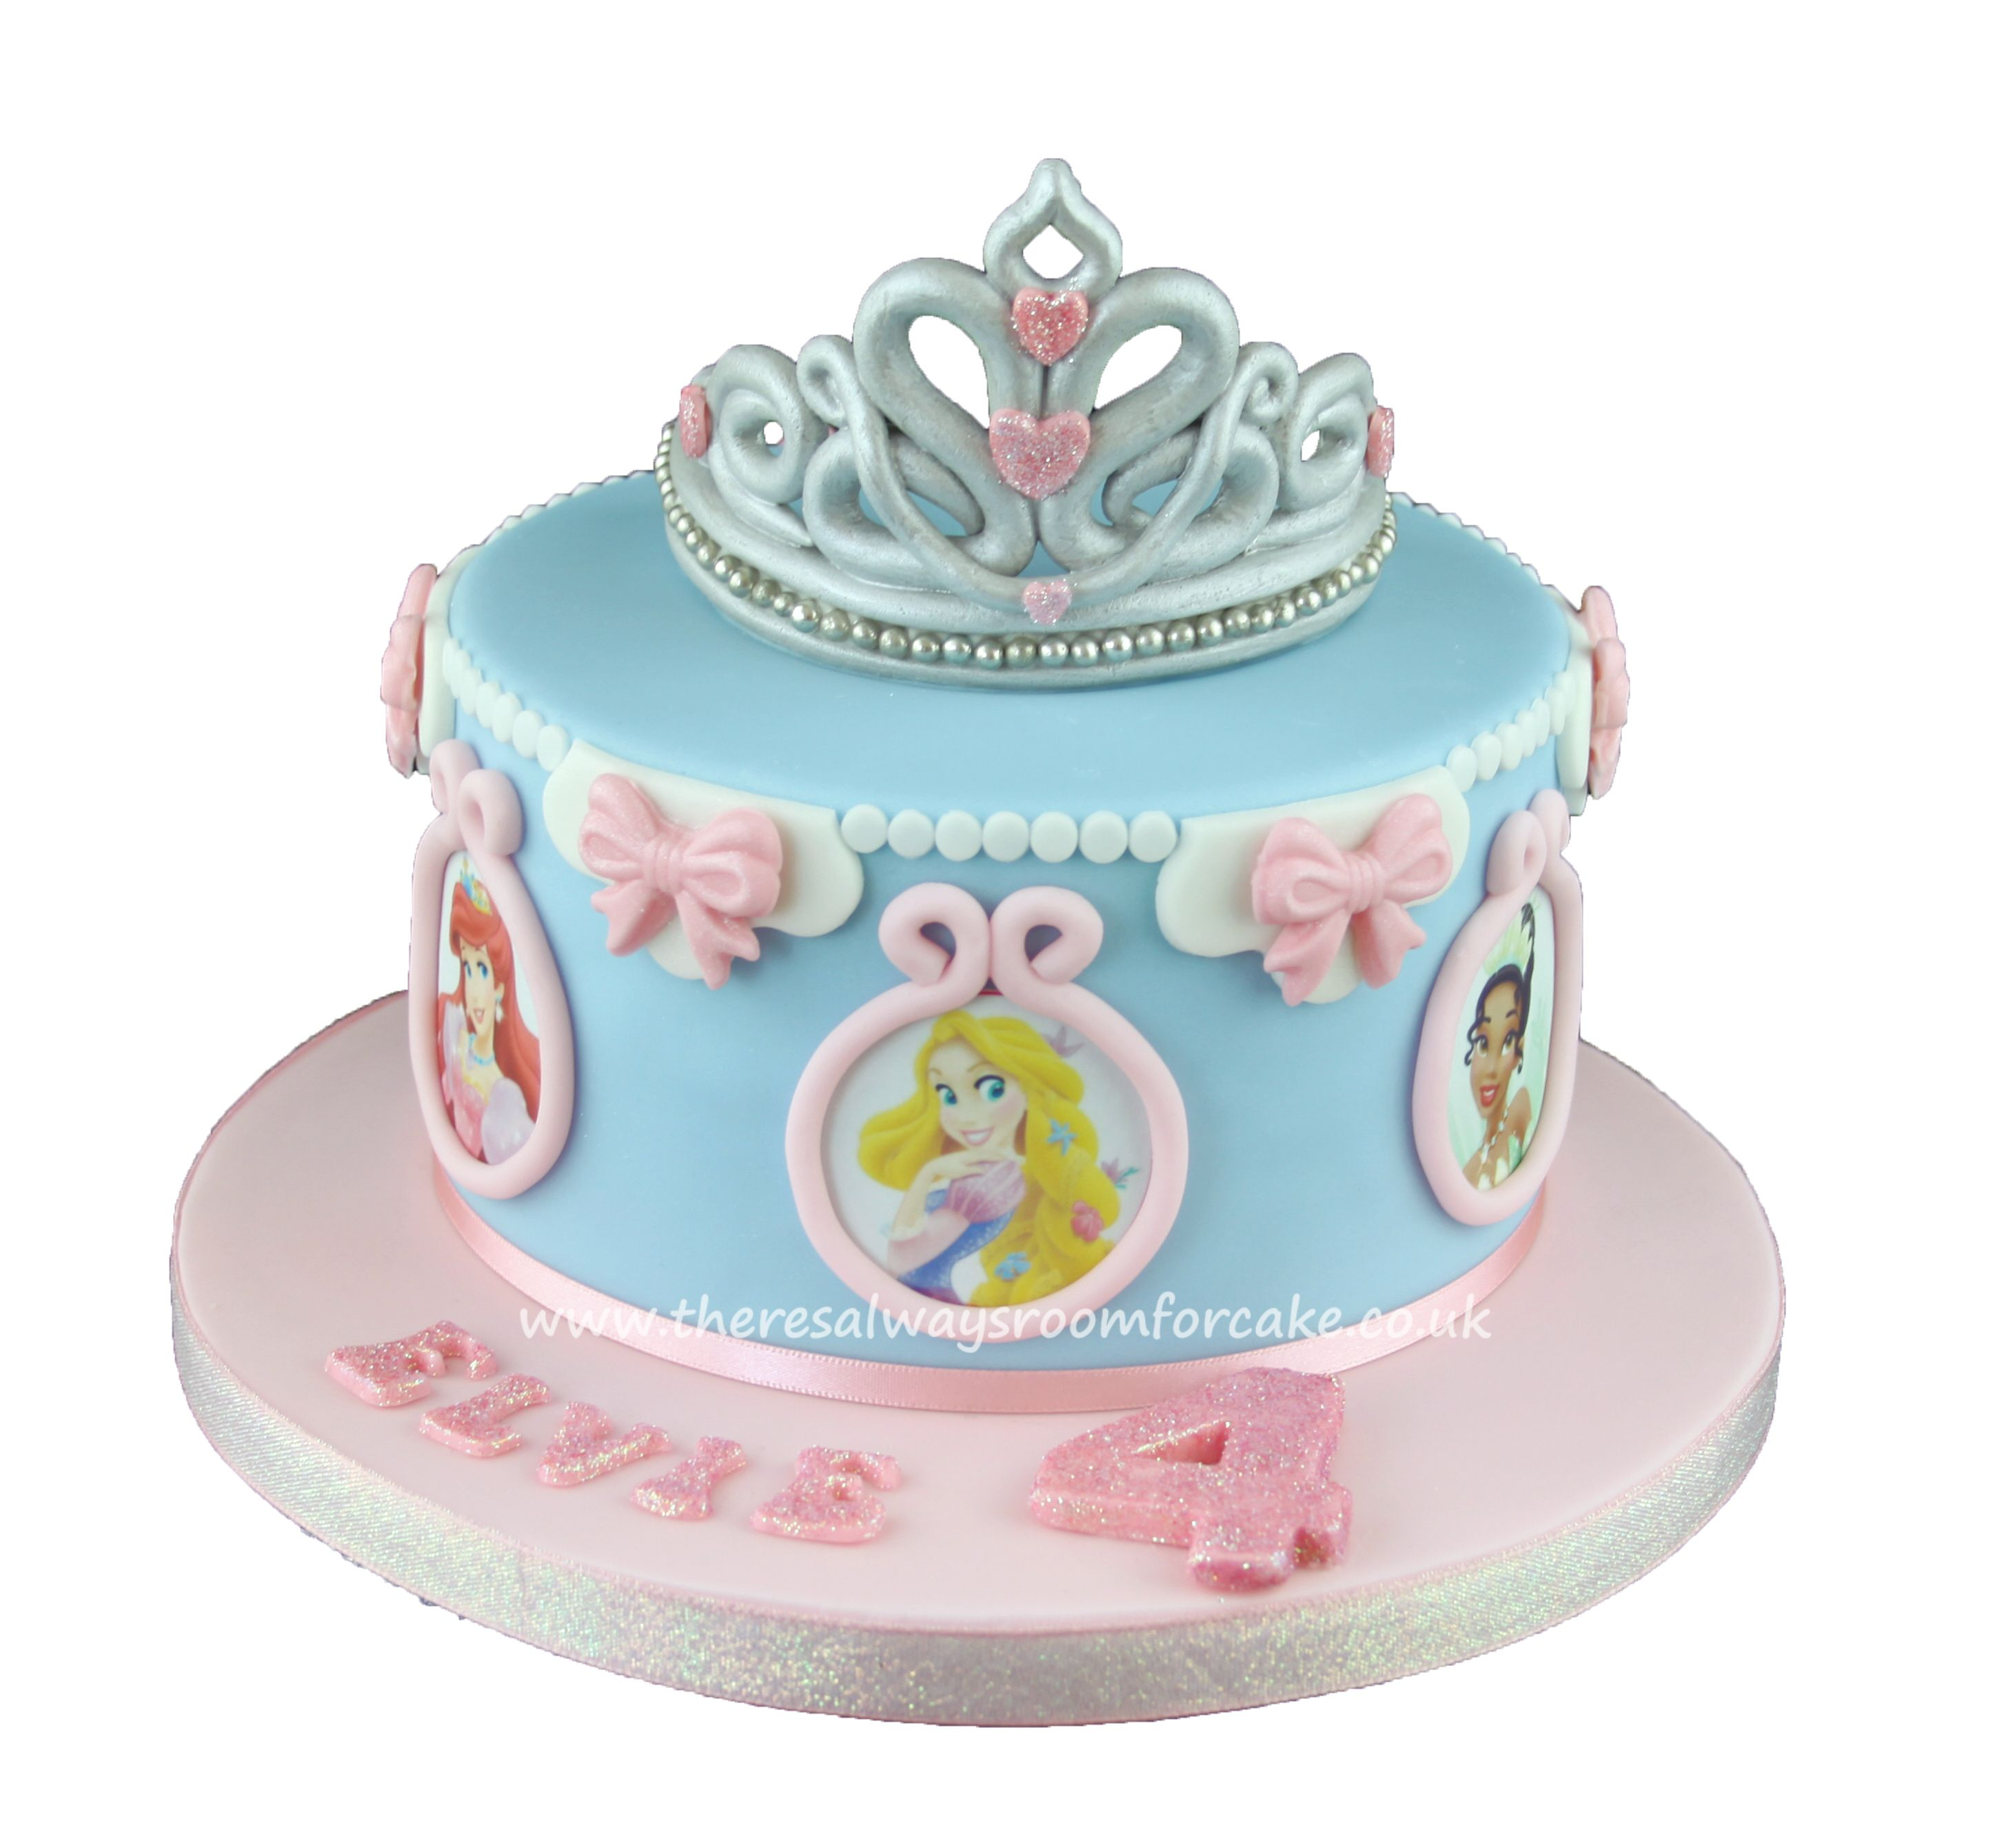 Stylish Ideas Disney Princess Cake Birthday With Tiara Topper Party Time